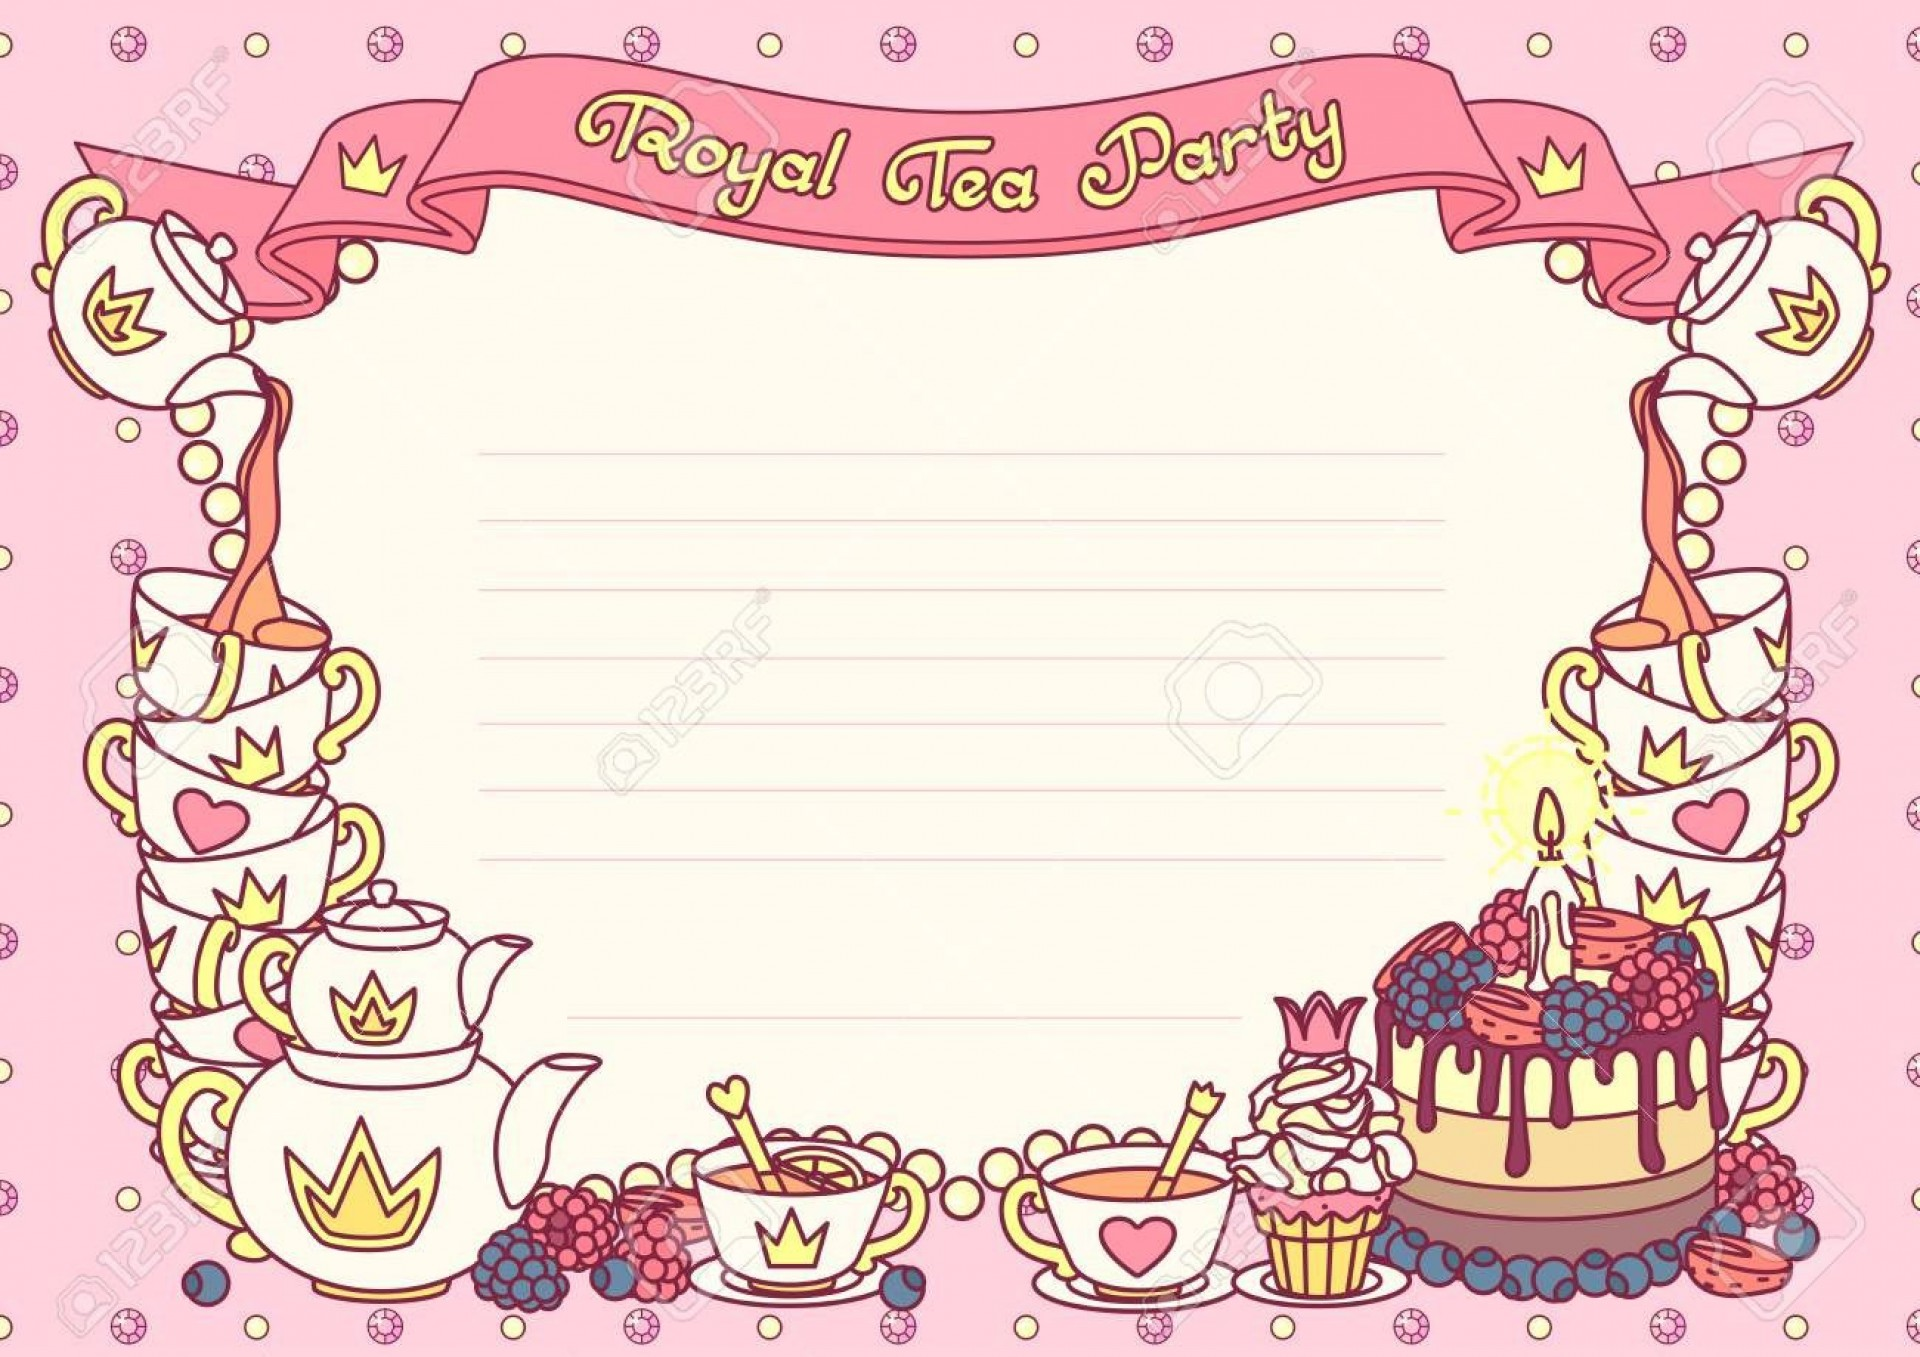 005 Rare Tea Party Invitation Template Image  Online Letter1920